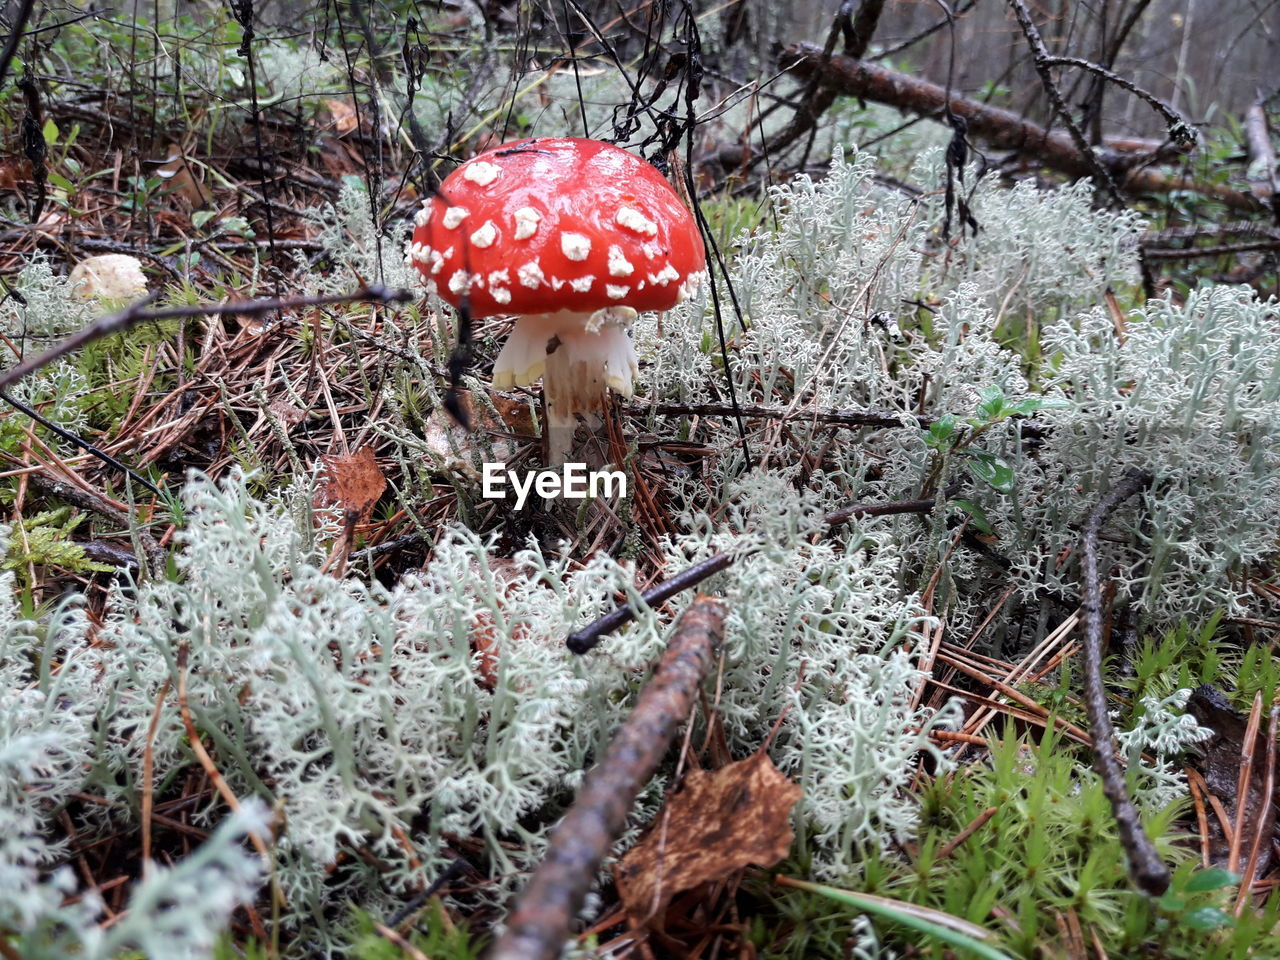 mushroom, fungus, vegetable, growth, food, plant, fly agaric mushroom, land, nature, red, toadstool, day, beauty in nature, forest, field, tree, no people, close-up, freshness, selective focus, outdoors, poisonous, surface level